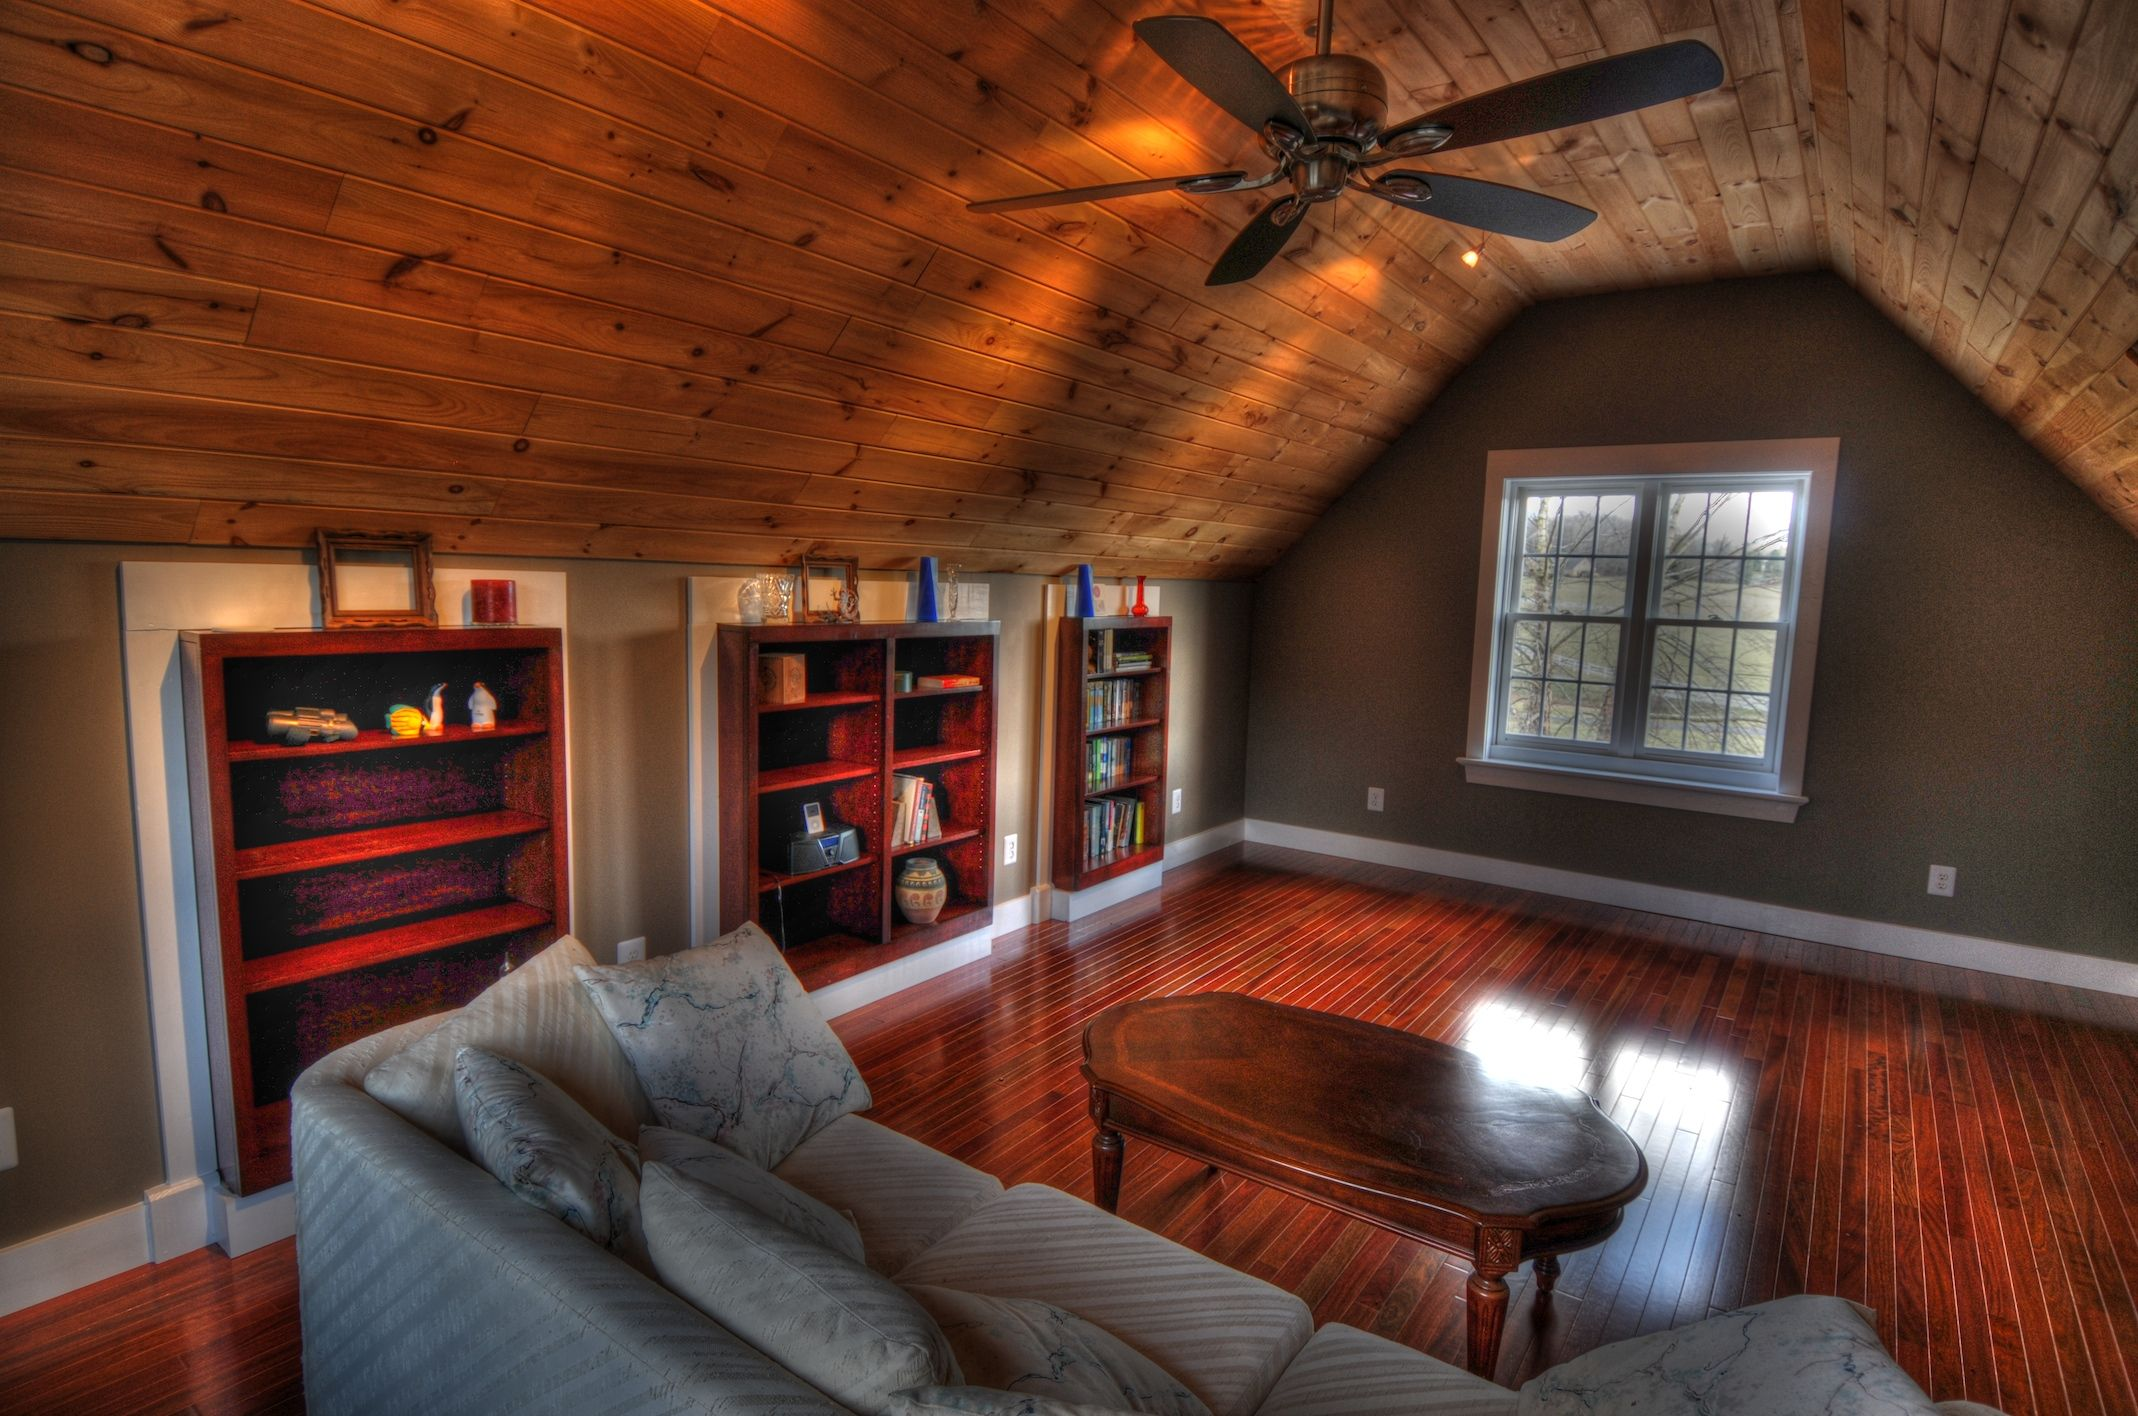 Room Above Garage Call It What You Want Wow Id Love